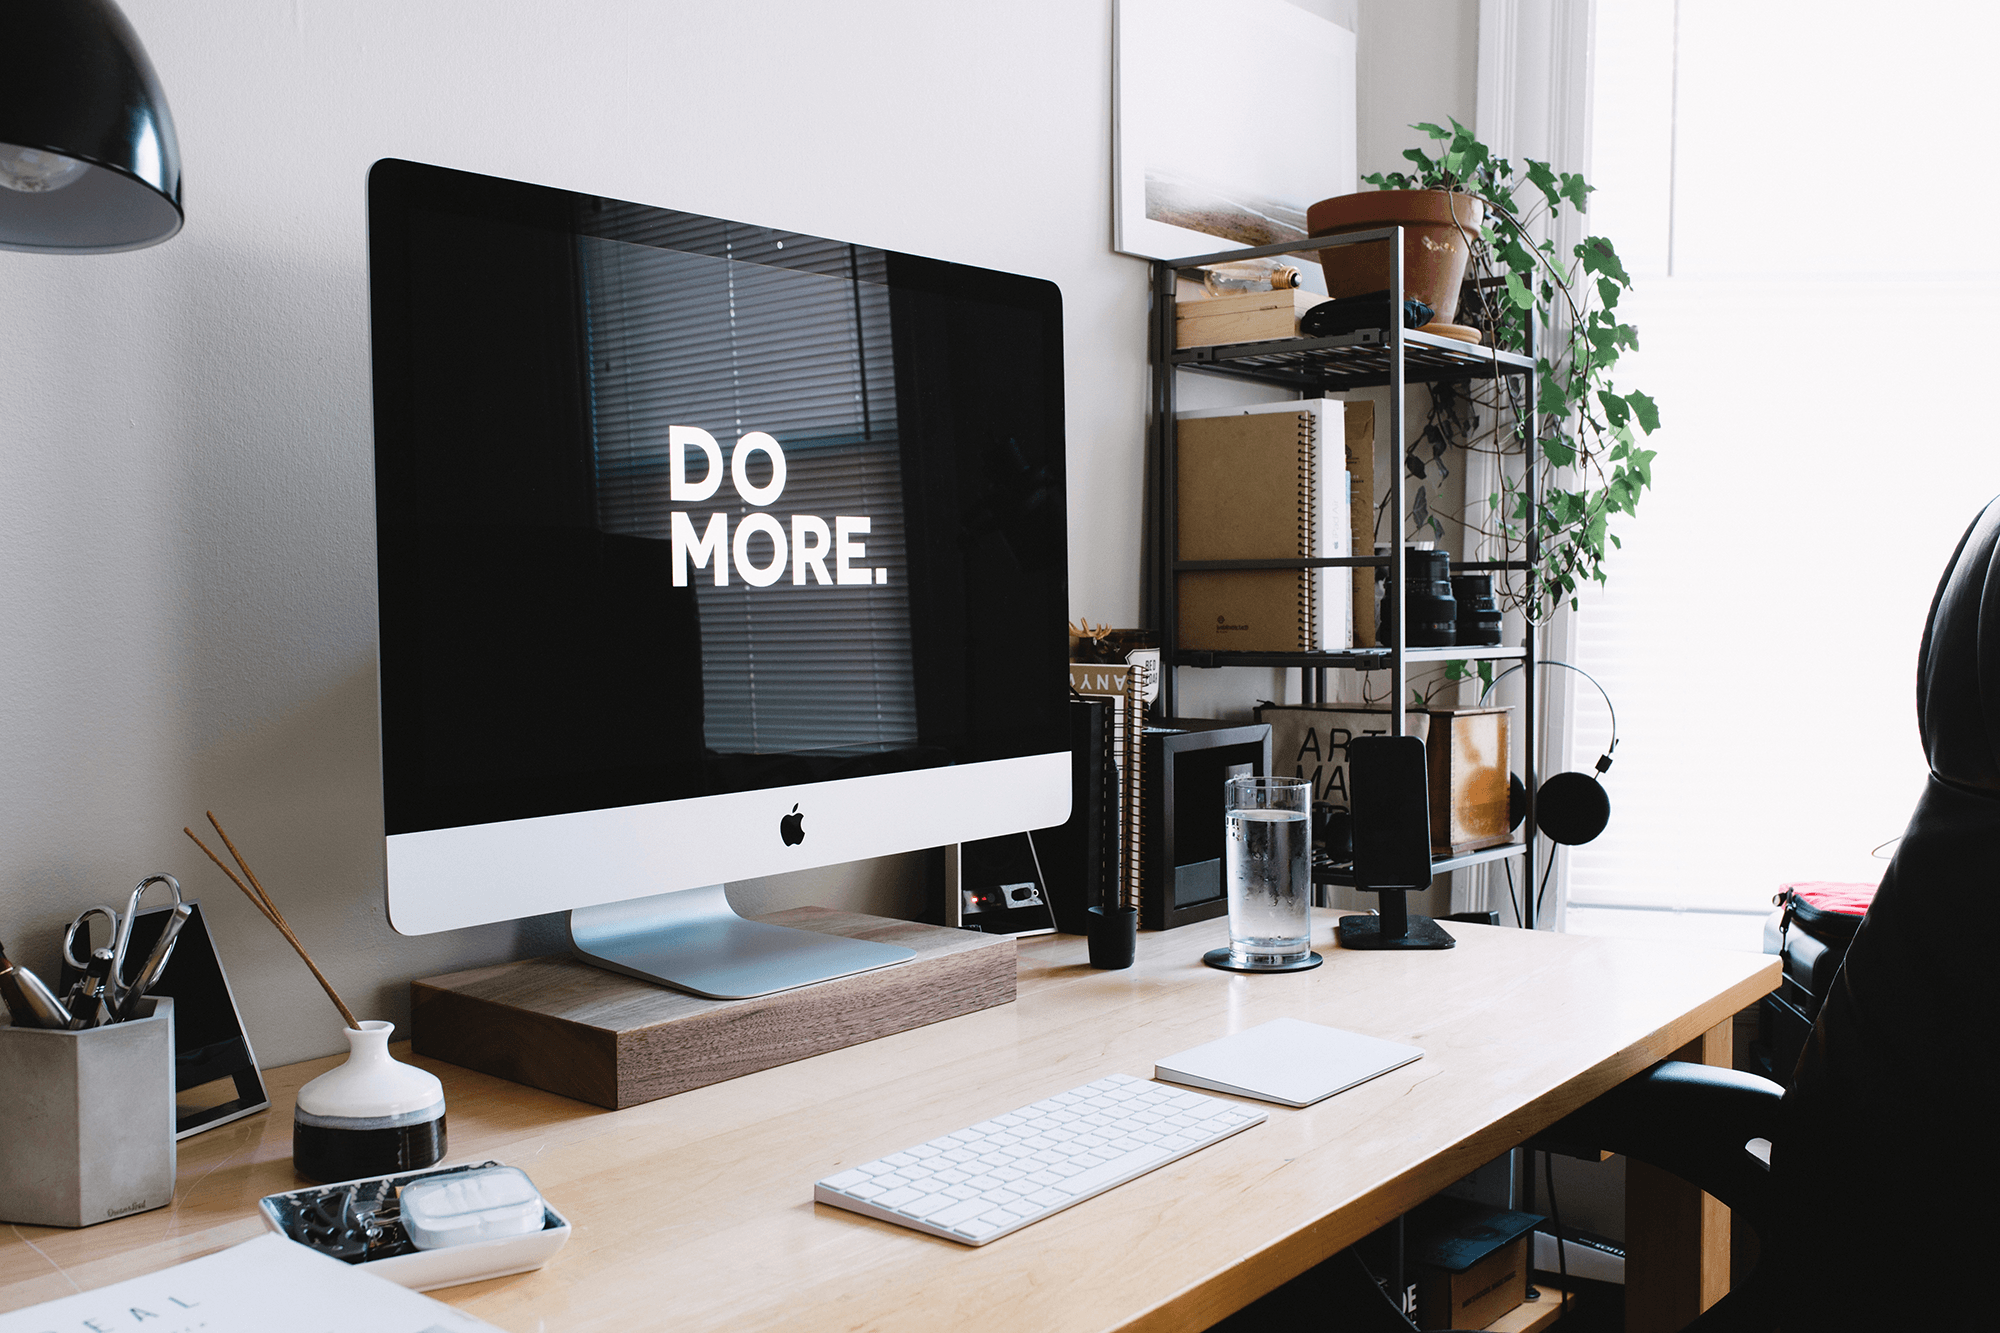 desktop with 'do more' on the screen - introduction to how support staff can make you more productive